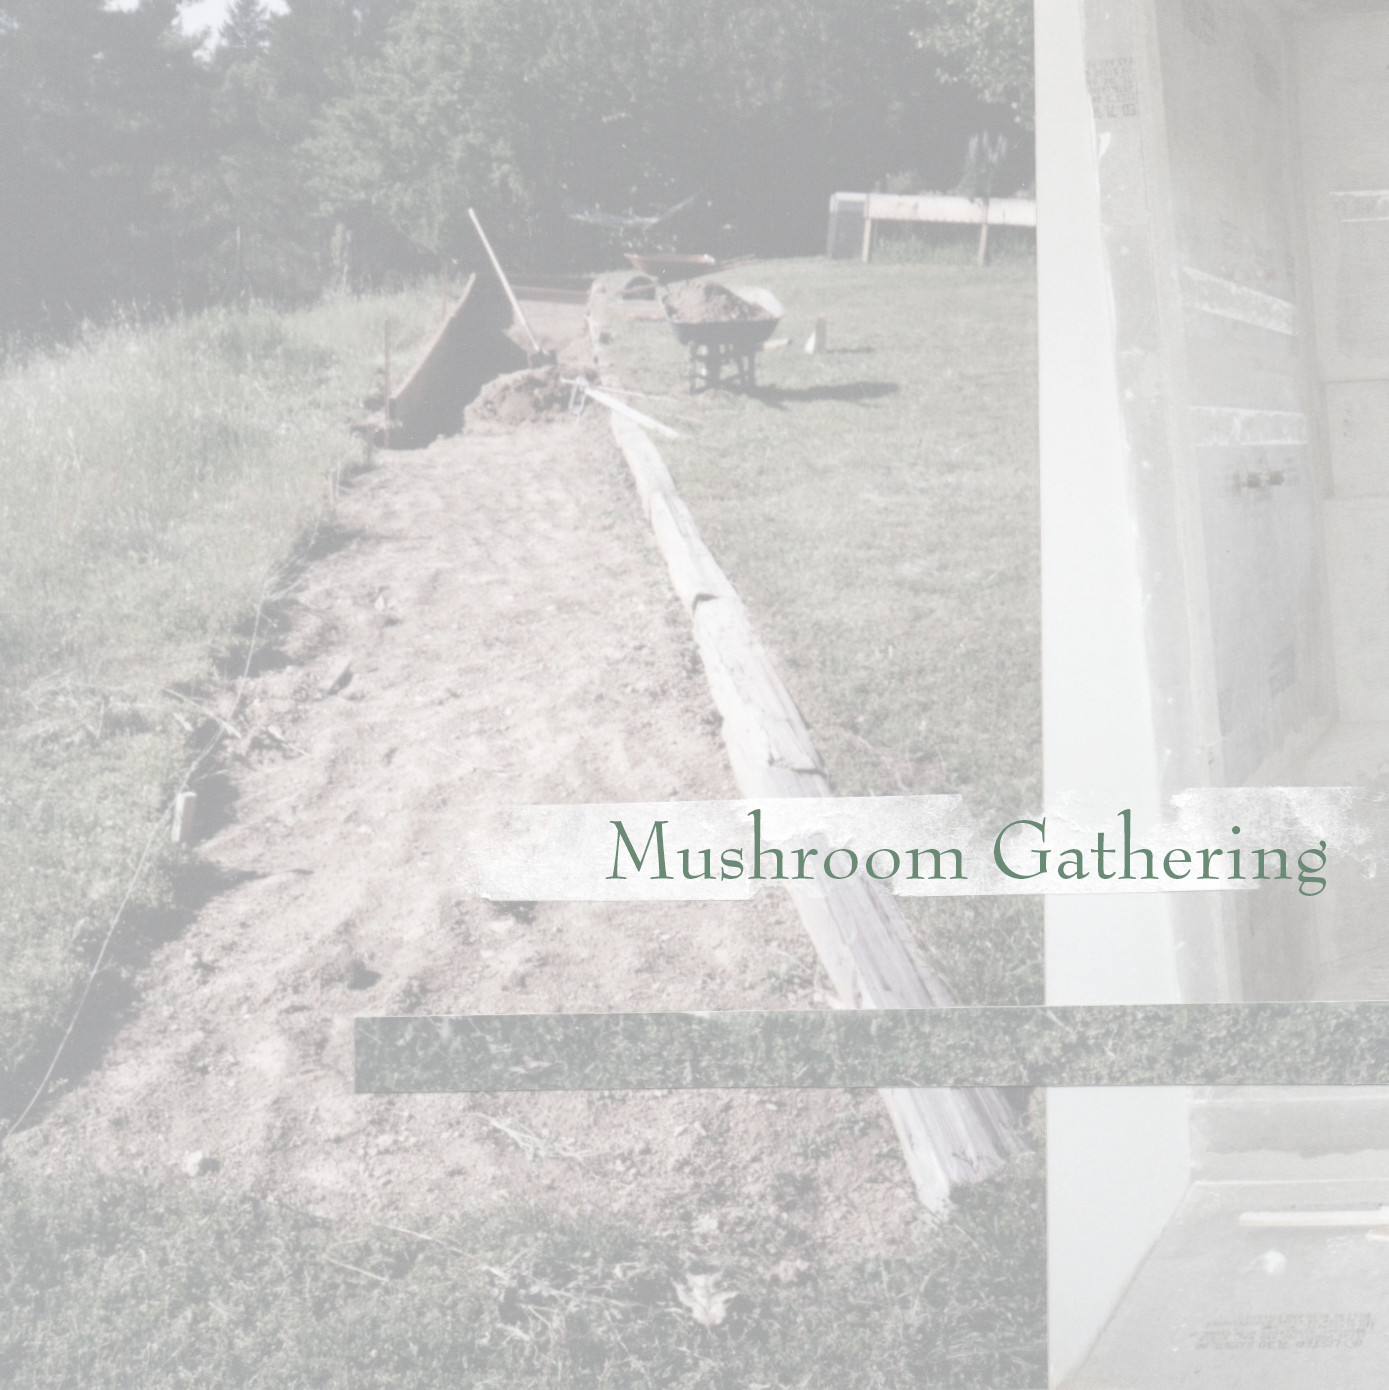 Mushroom Gathering Website Tile.jpg